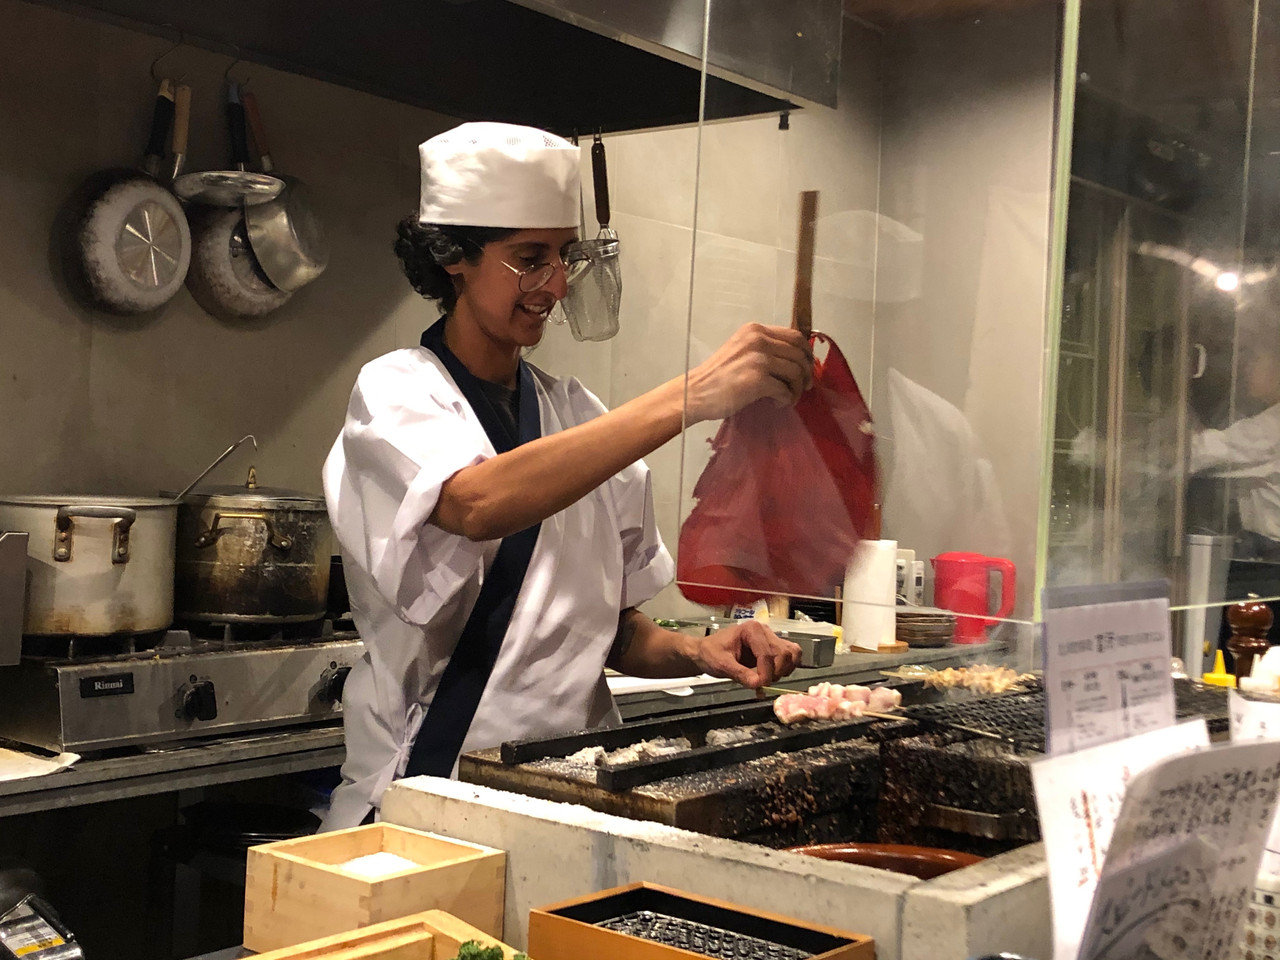 Japan Culinary Institute (JCI) Professio